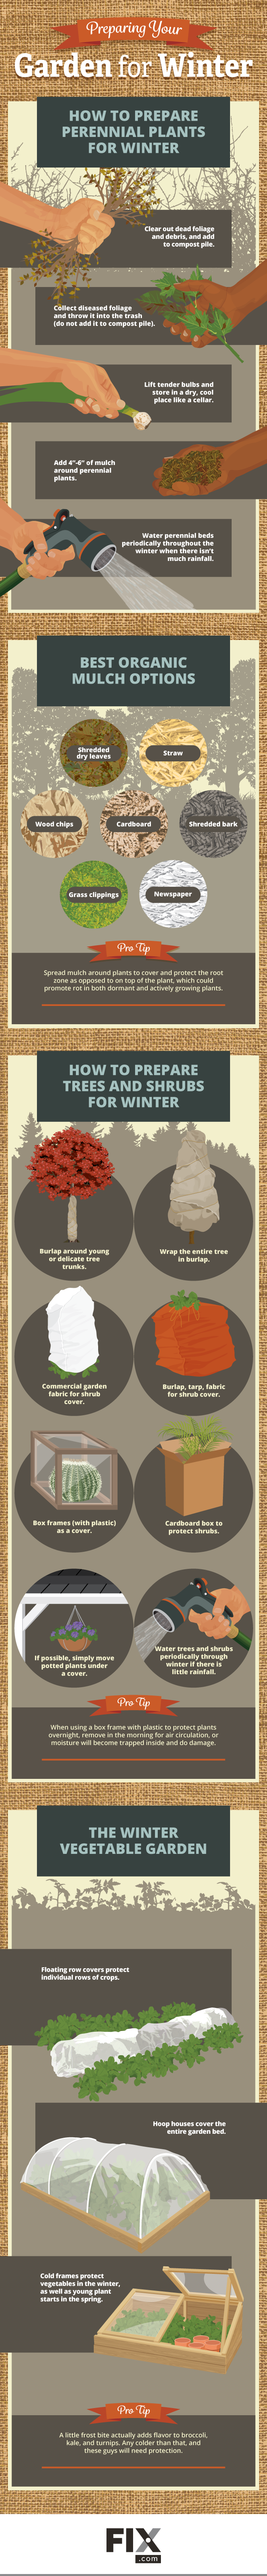 Preparing Your Garden For Winter #Infographic